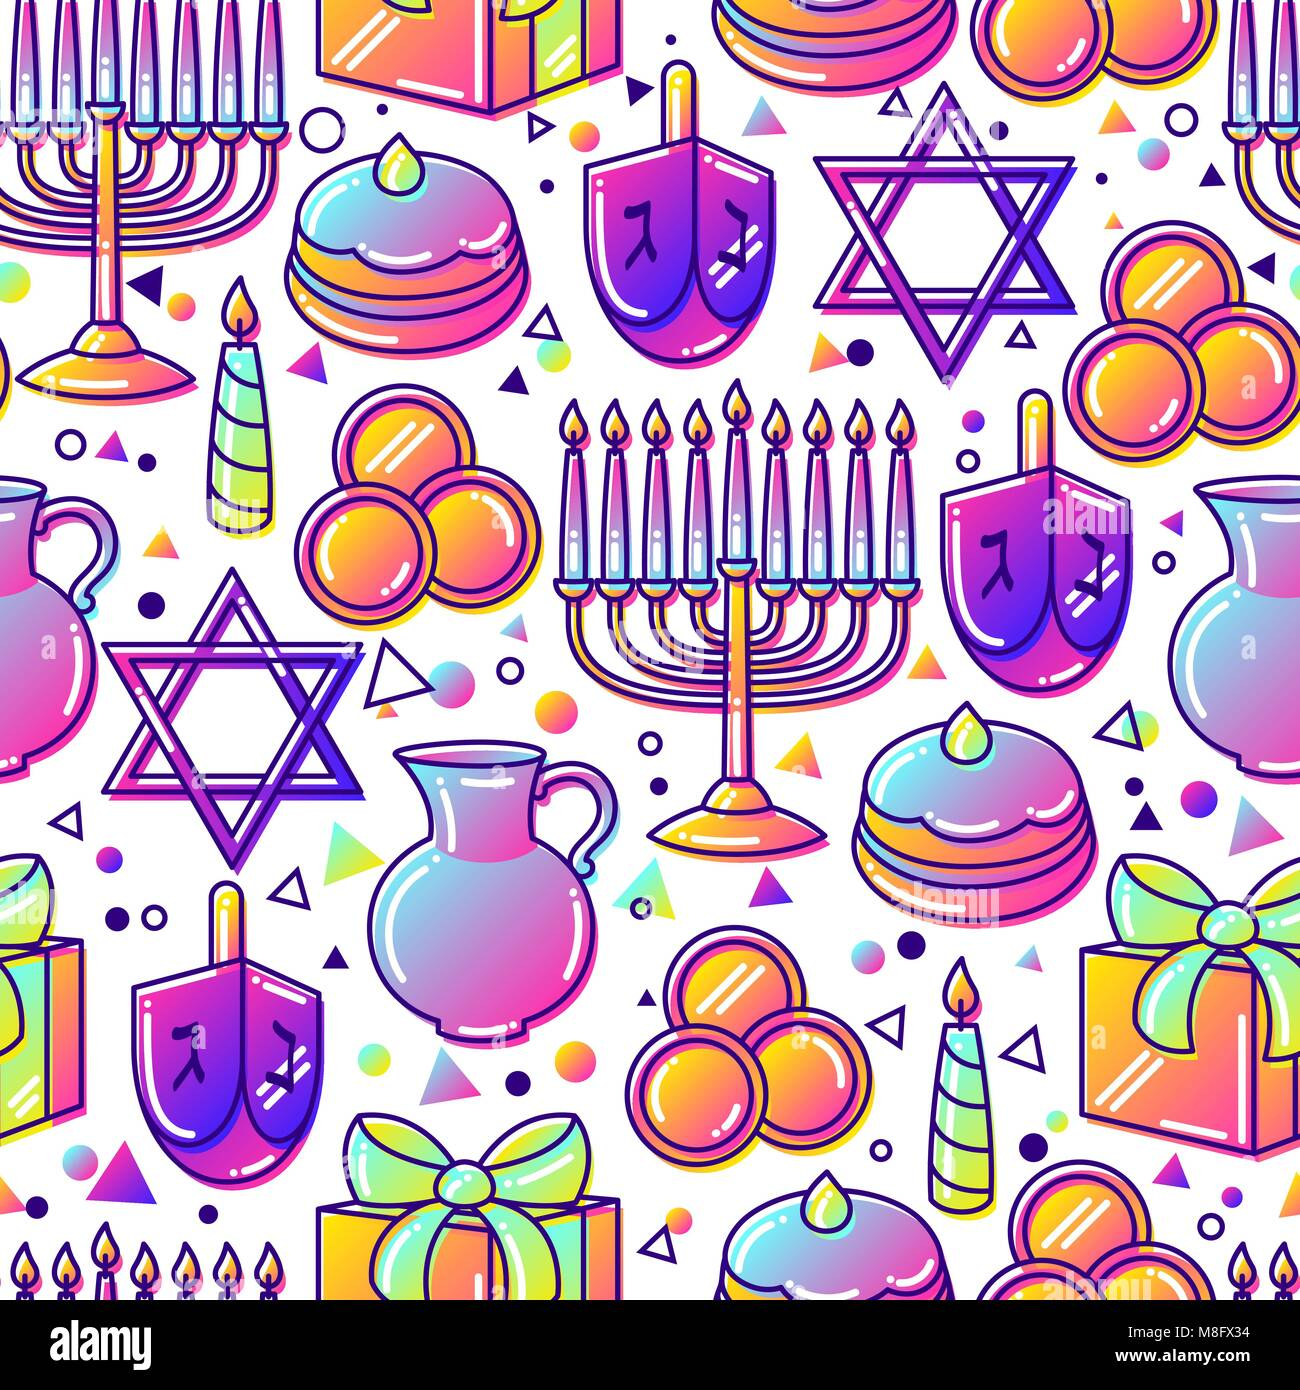 Happy Hanukkah celebration seamless pattern with holiday objects - Stock Vector